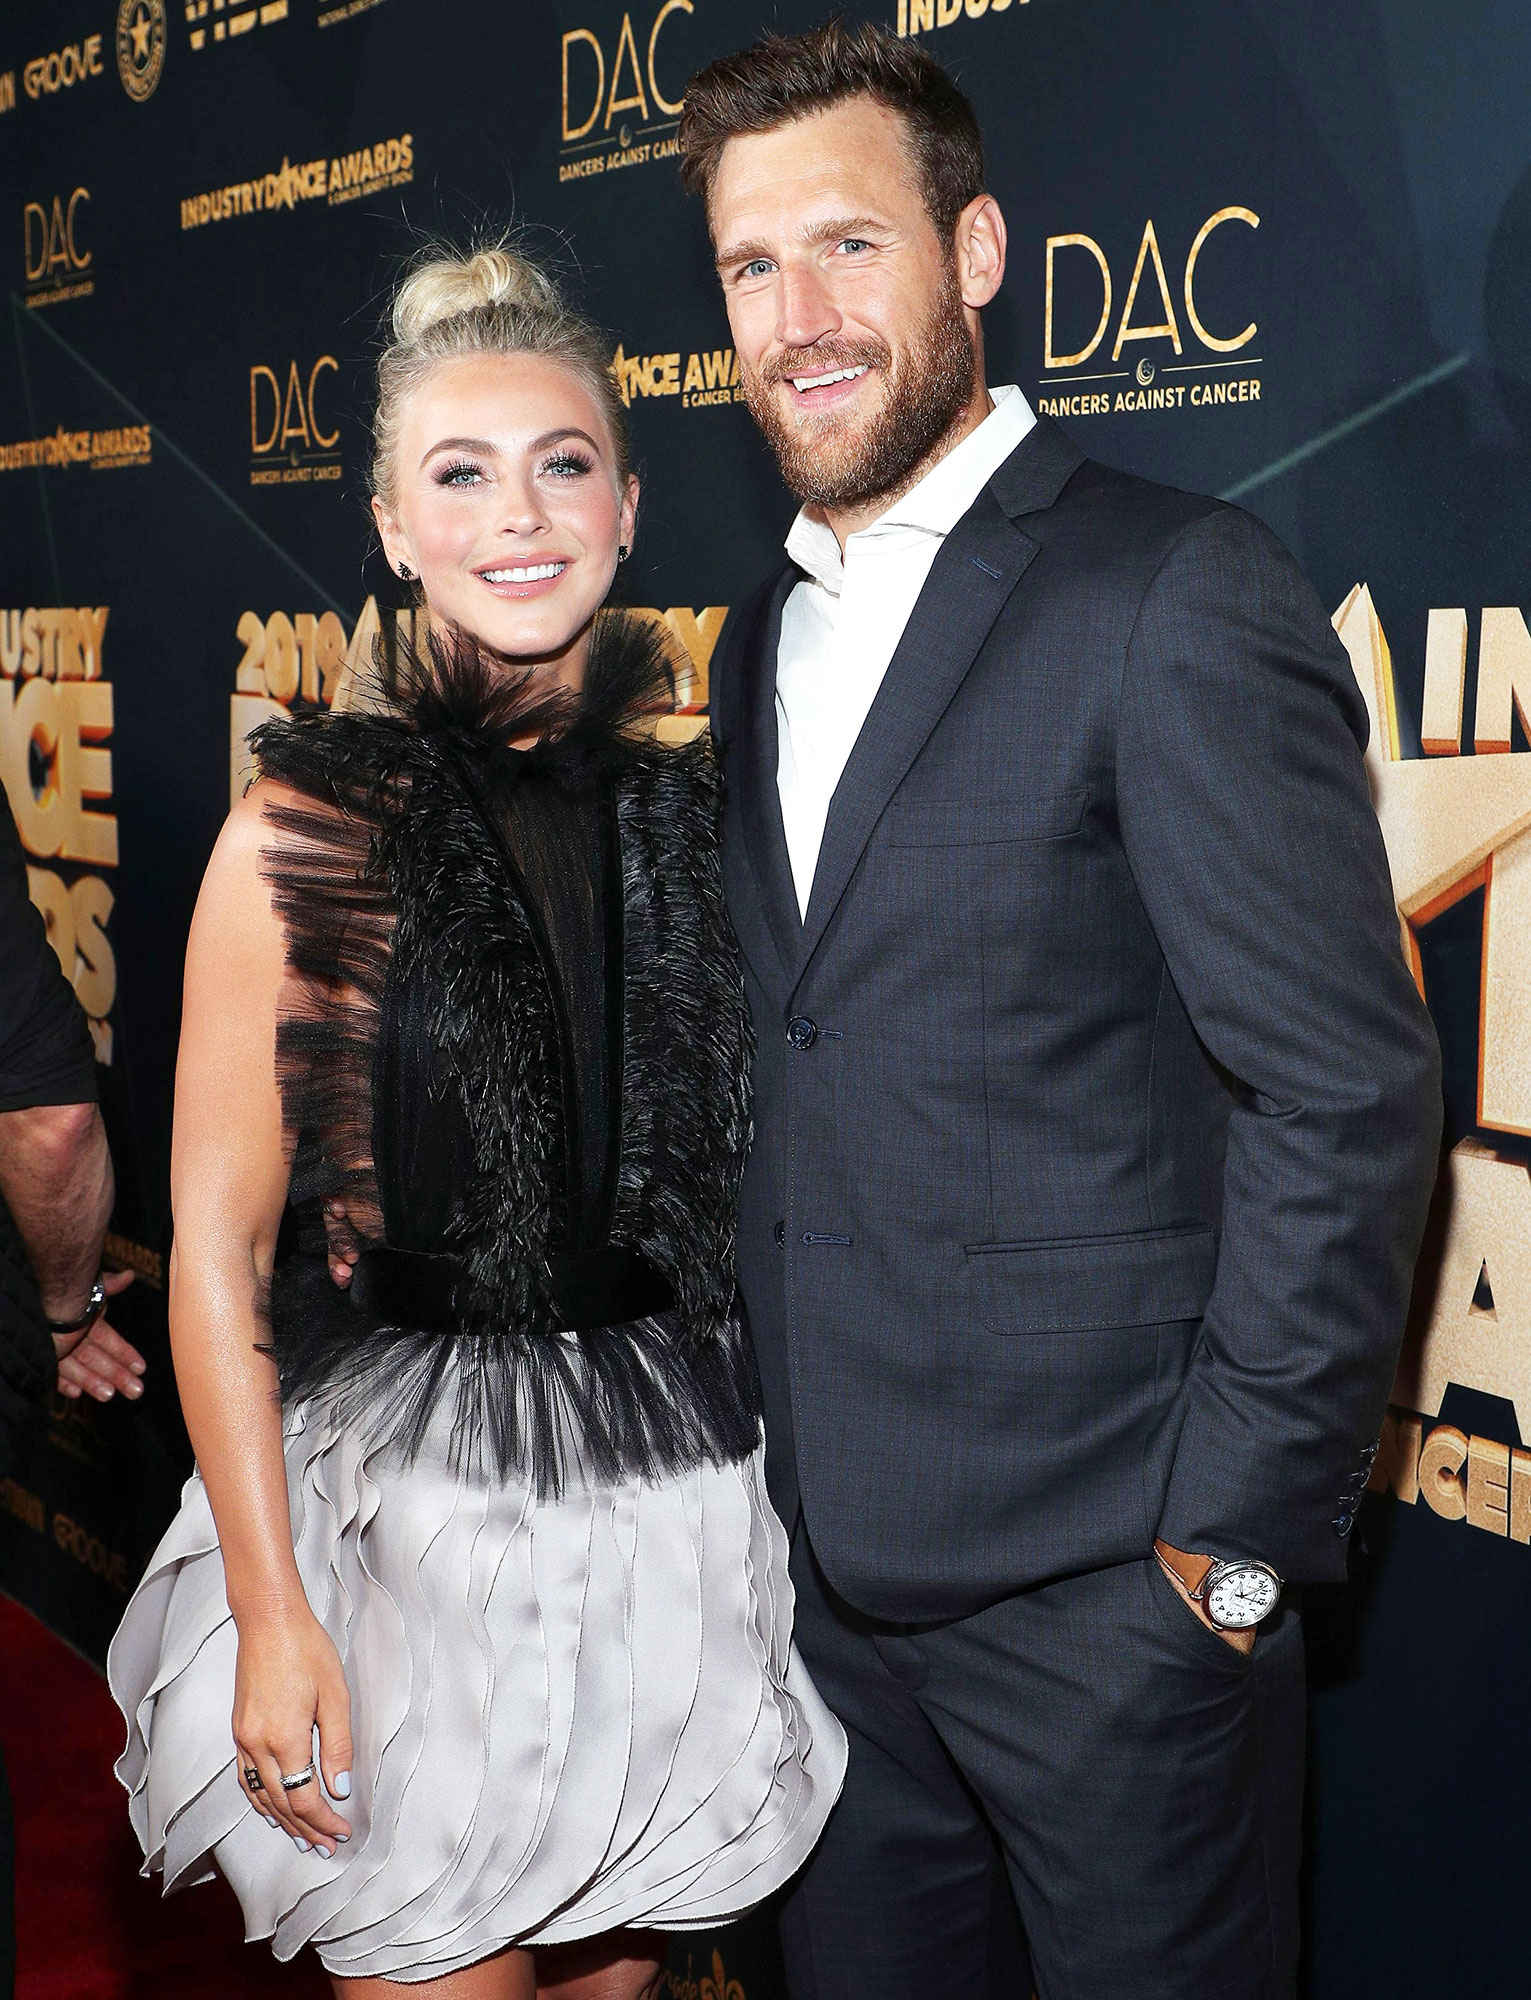 Julianne Hough and Brooks Laich attend the Industry Dance Awards and Cancer Benefit Show Where Riawna Capri Says Julianne Hough and Brooks Laich Are Good Together Amid Marital Issues